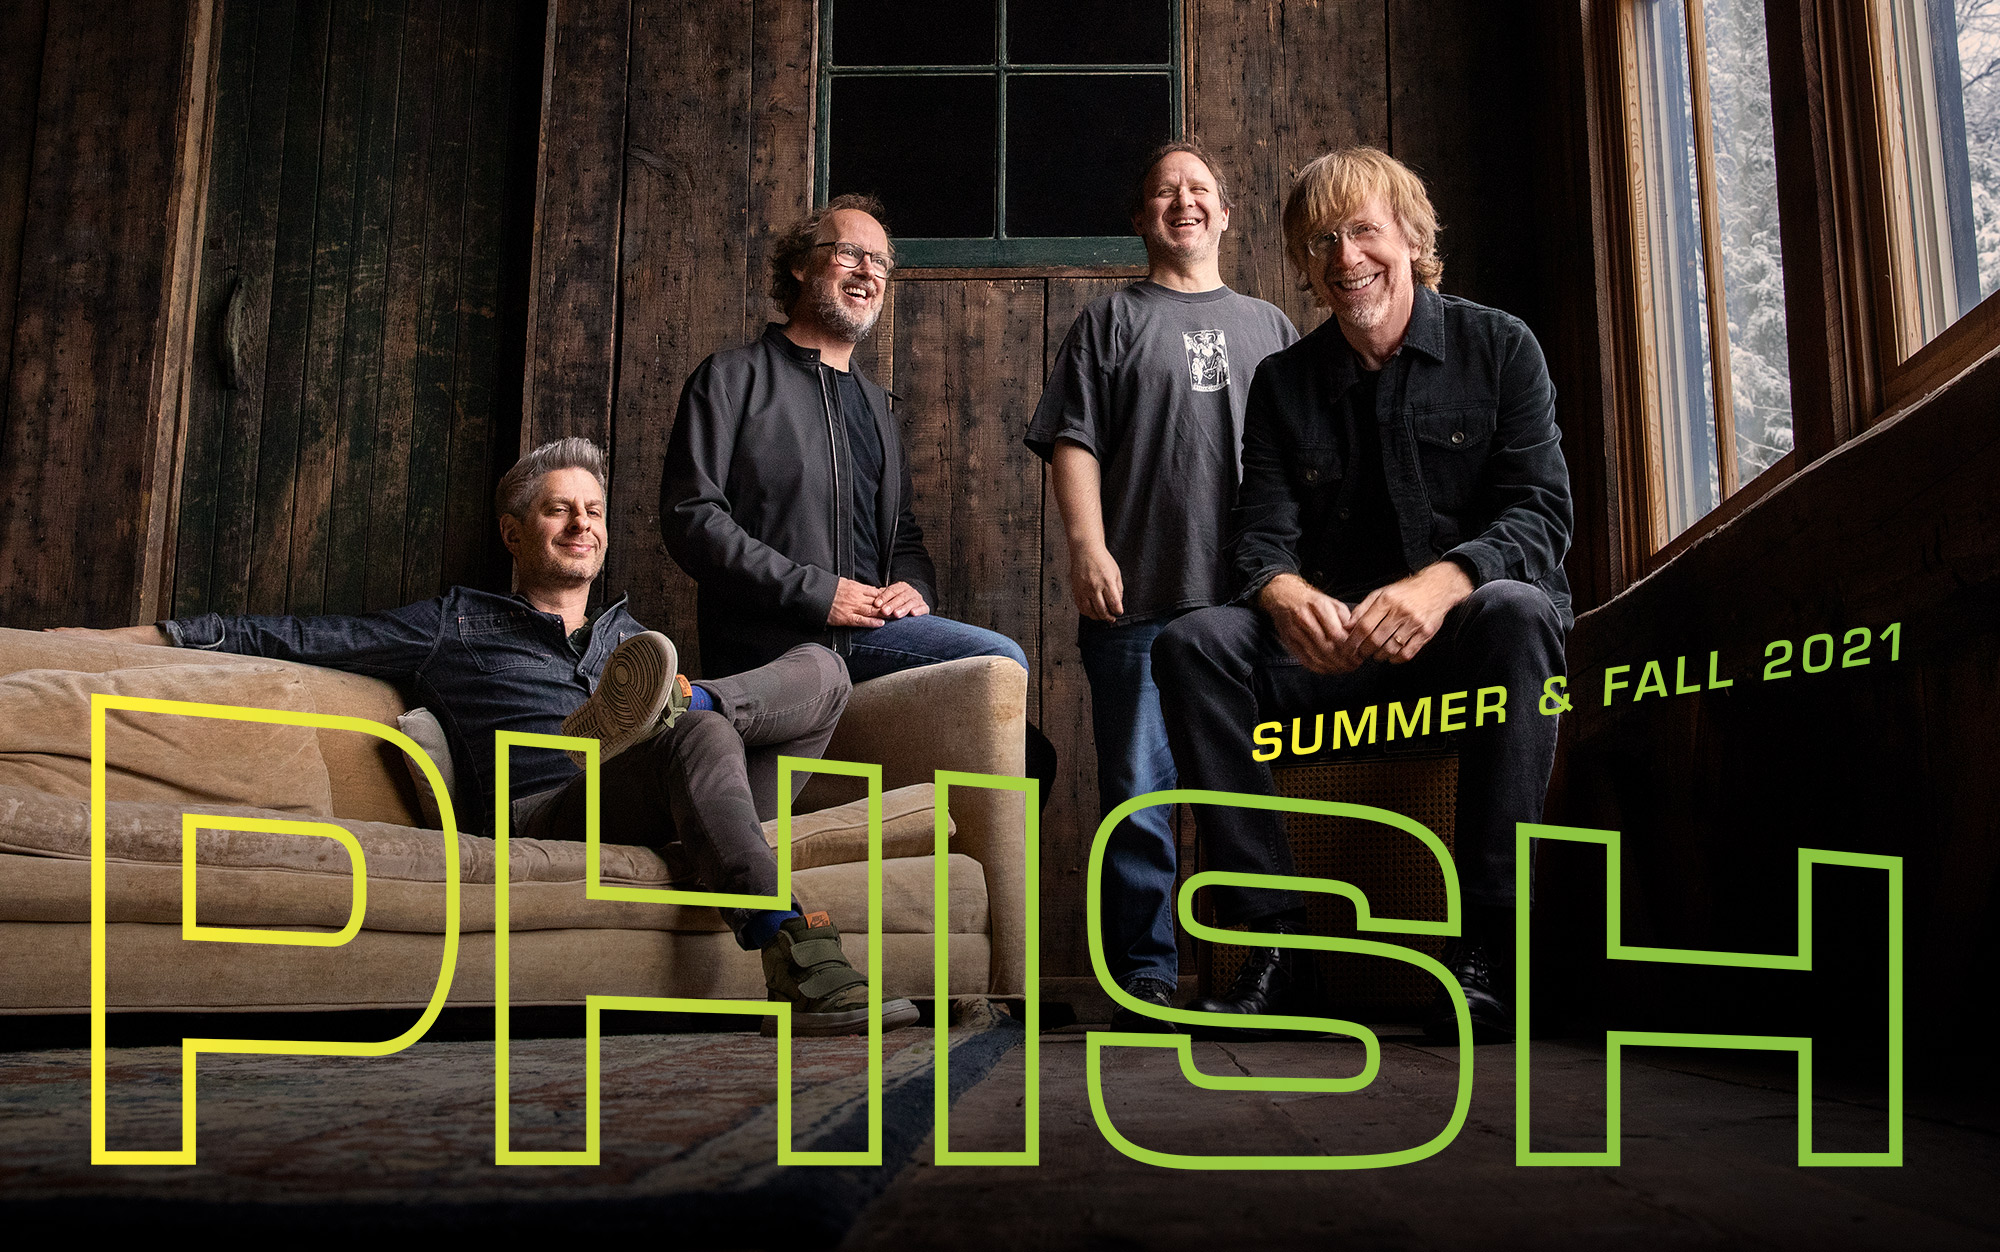 Download iCal and Google calendar for Phish tour dates and shows